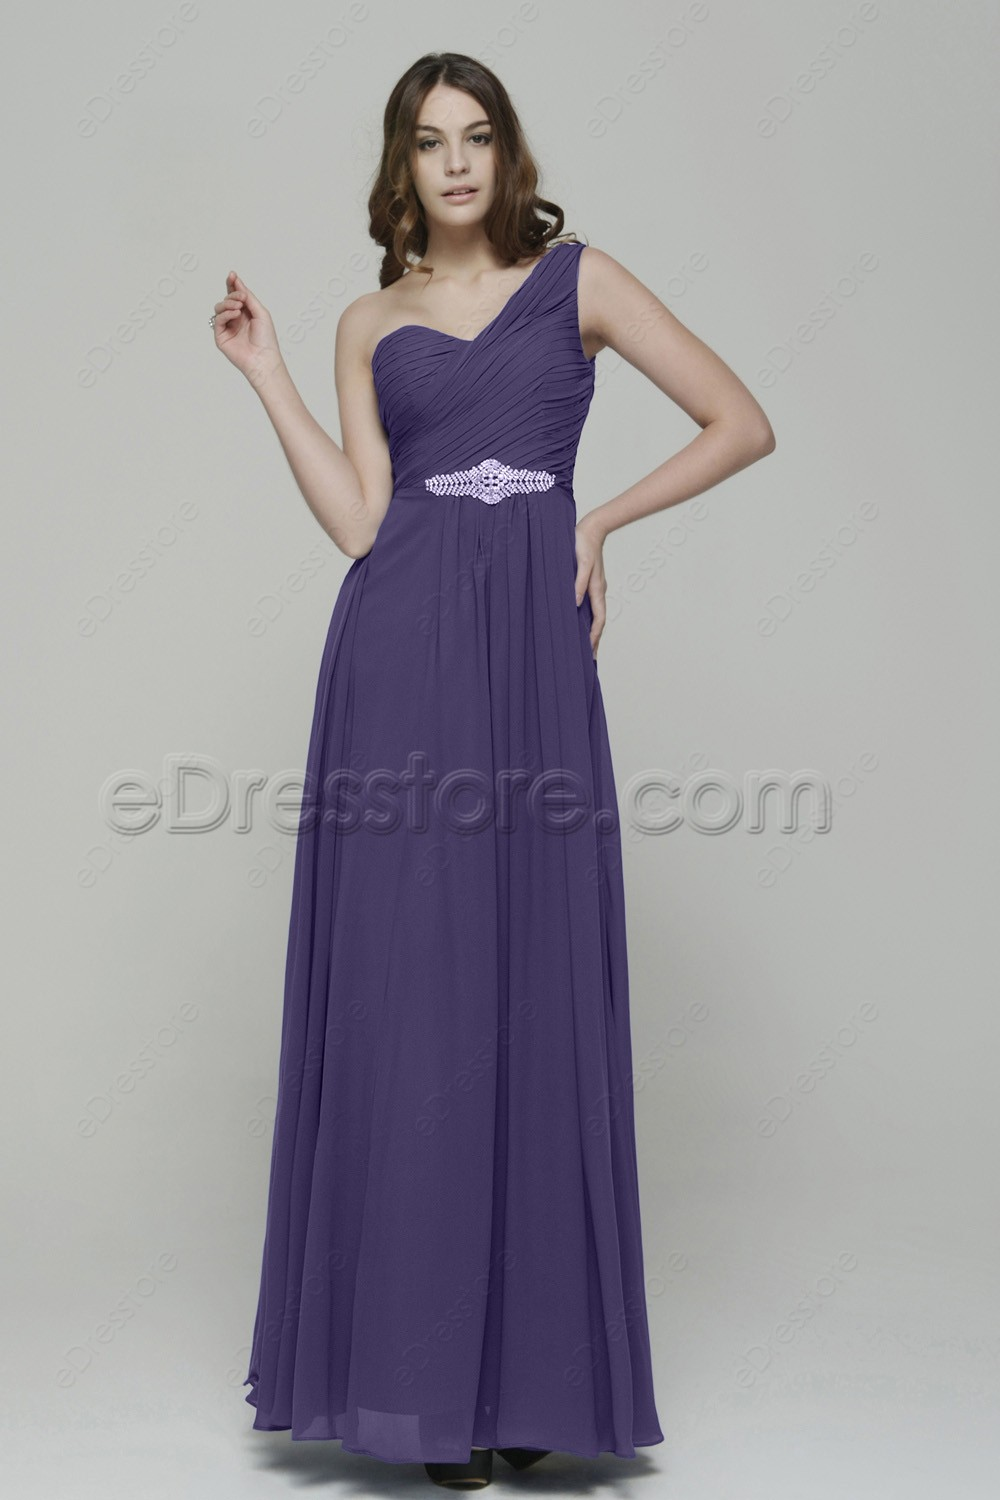 Lavender maid of honor dresses bridesmaid dresses for Maid of honor wedding dresses